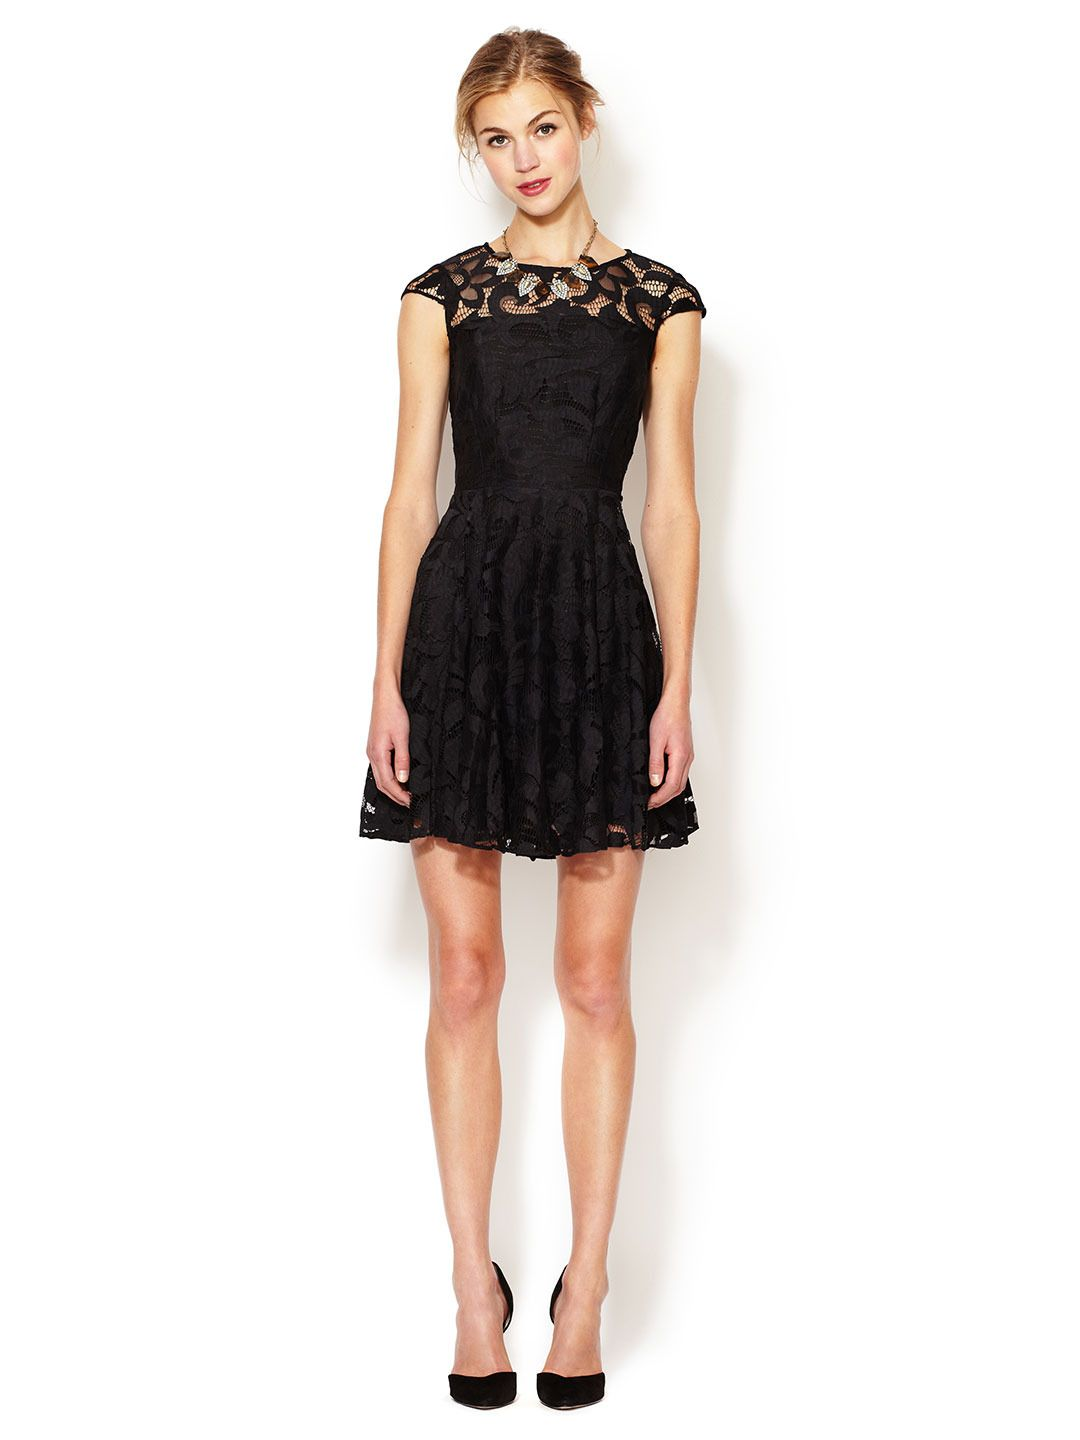 Lace fit and flare dress by the letter at gilt dresses i want